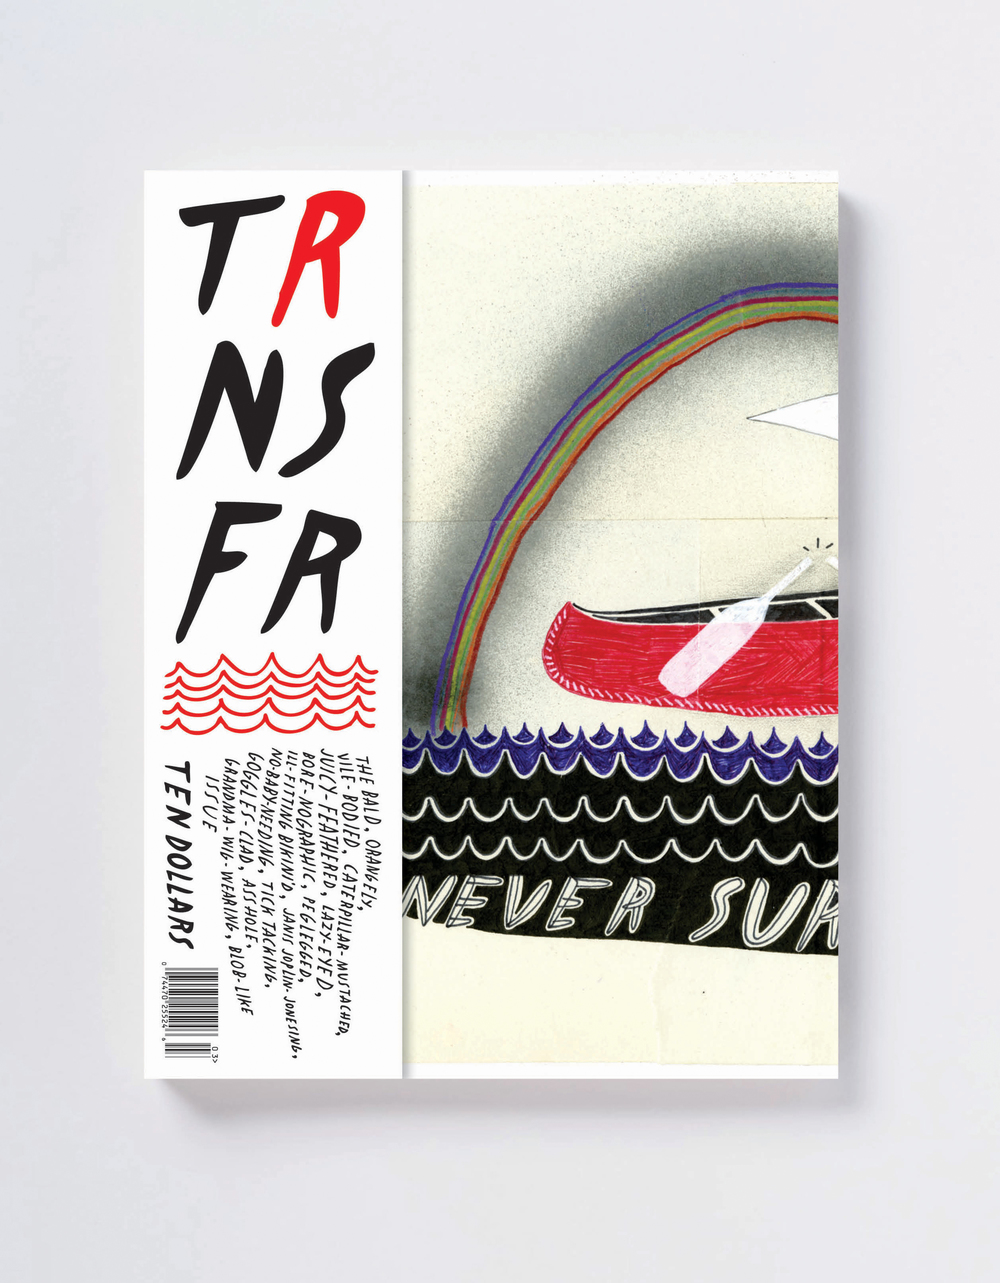 Trnsfr Issue 4 RGB.jpg